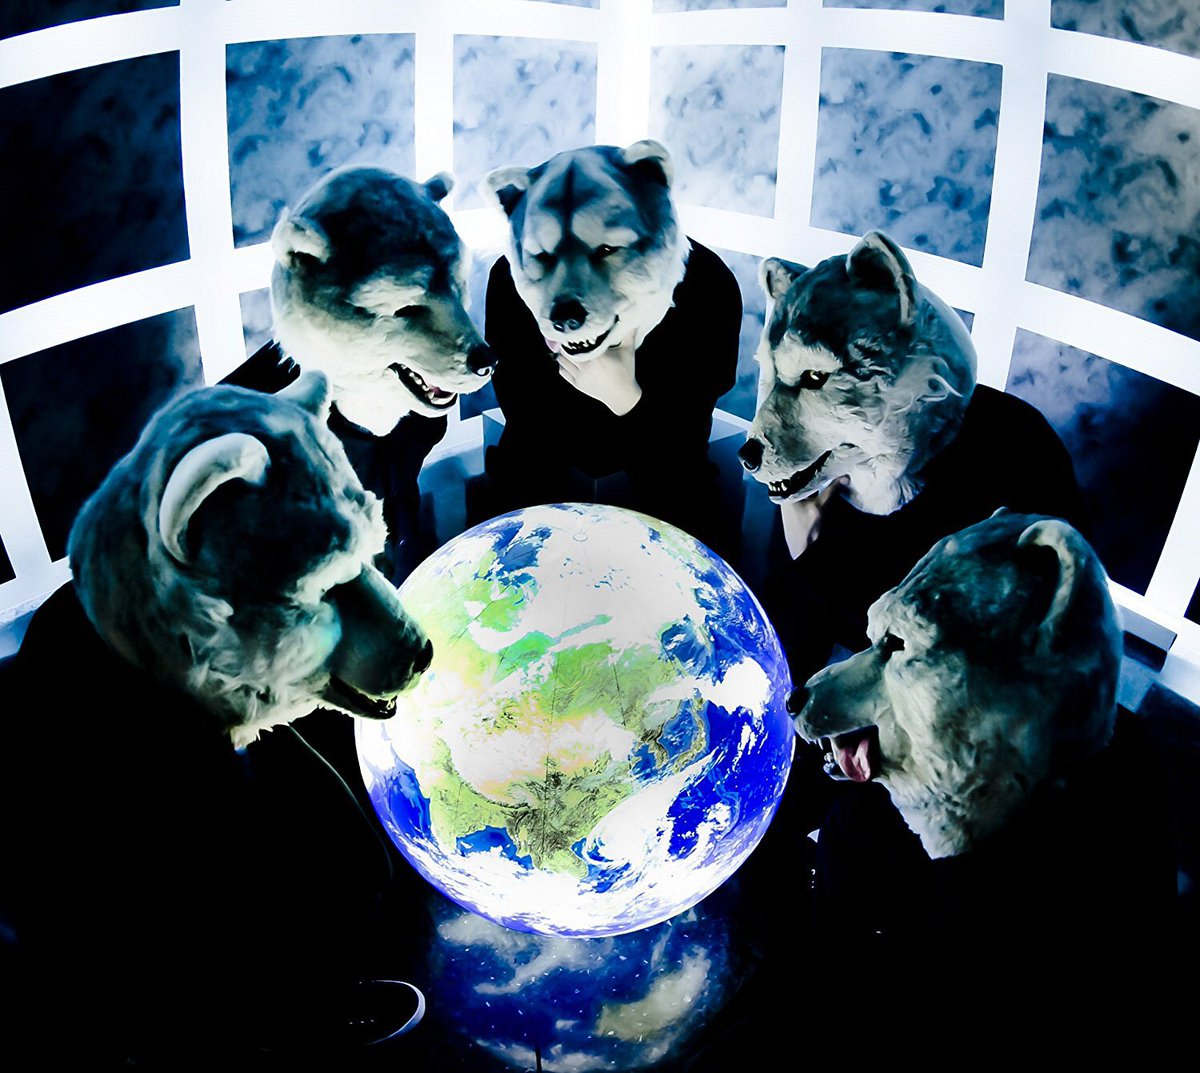 Man with a Mission – Mash up the World